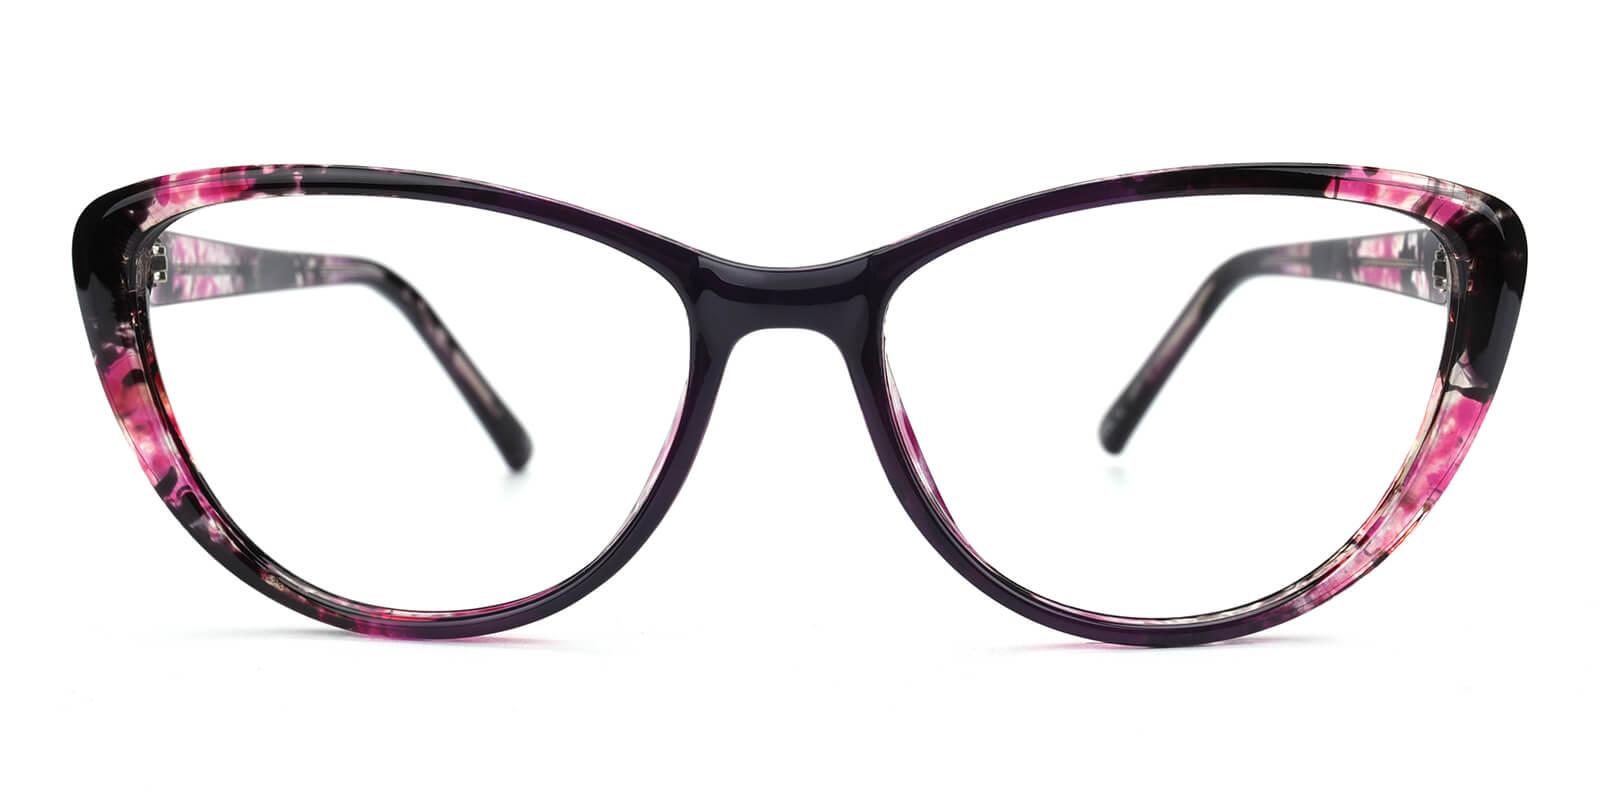 Slackey-Pink-Cat-Acetate-Eyeglasses-detail